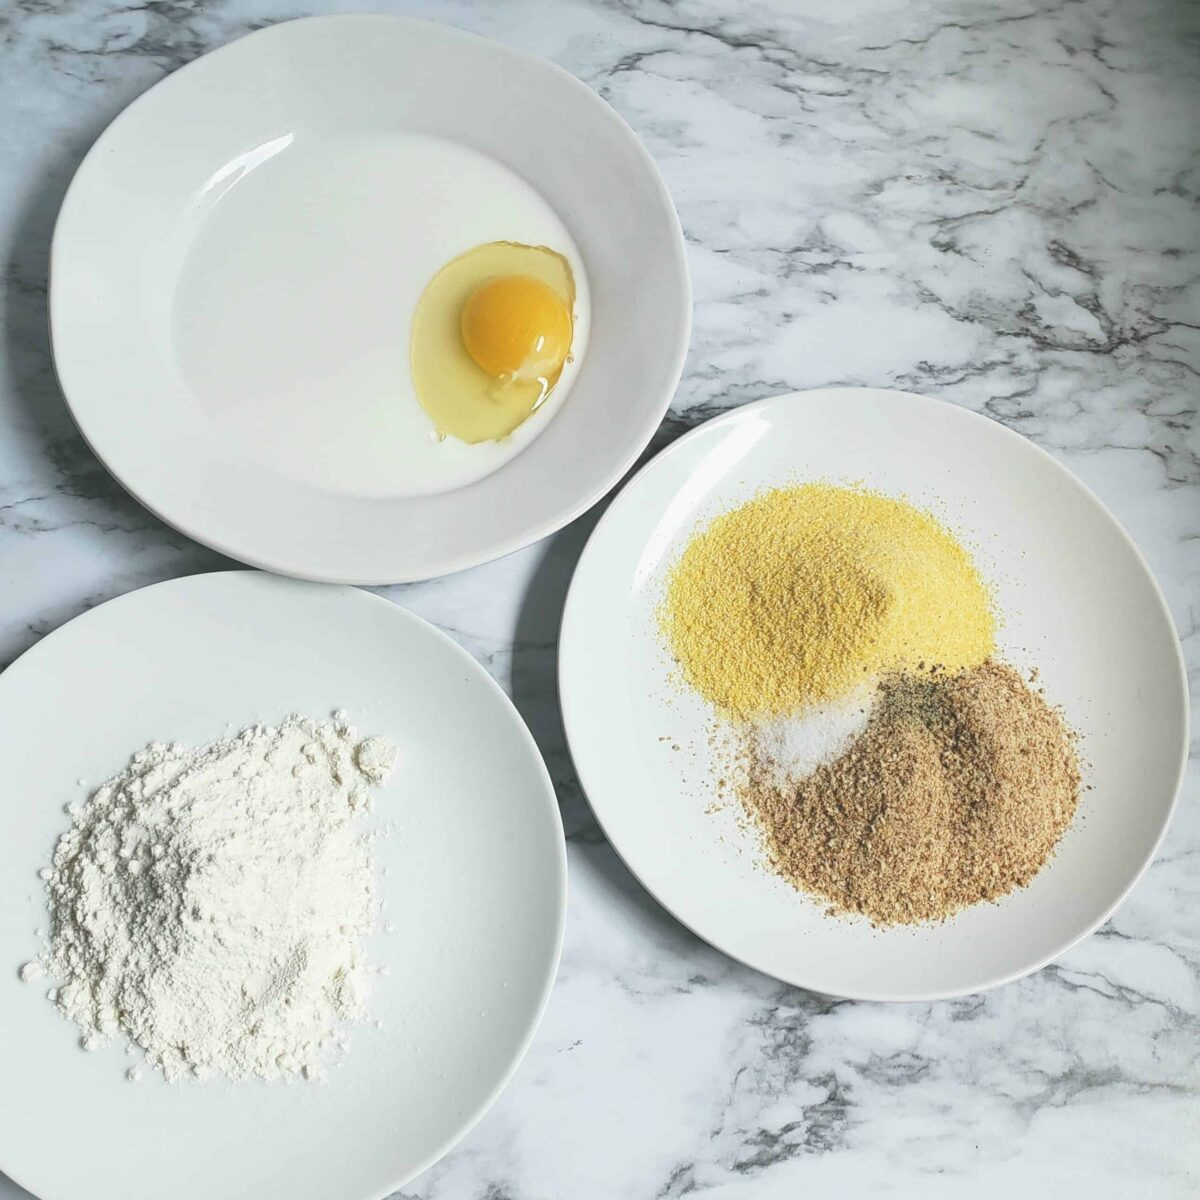 Three white plates with egg and milk mixture, flour, and cornmeal and breadcrumbs for dredging fried green tomatoes